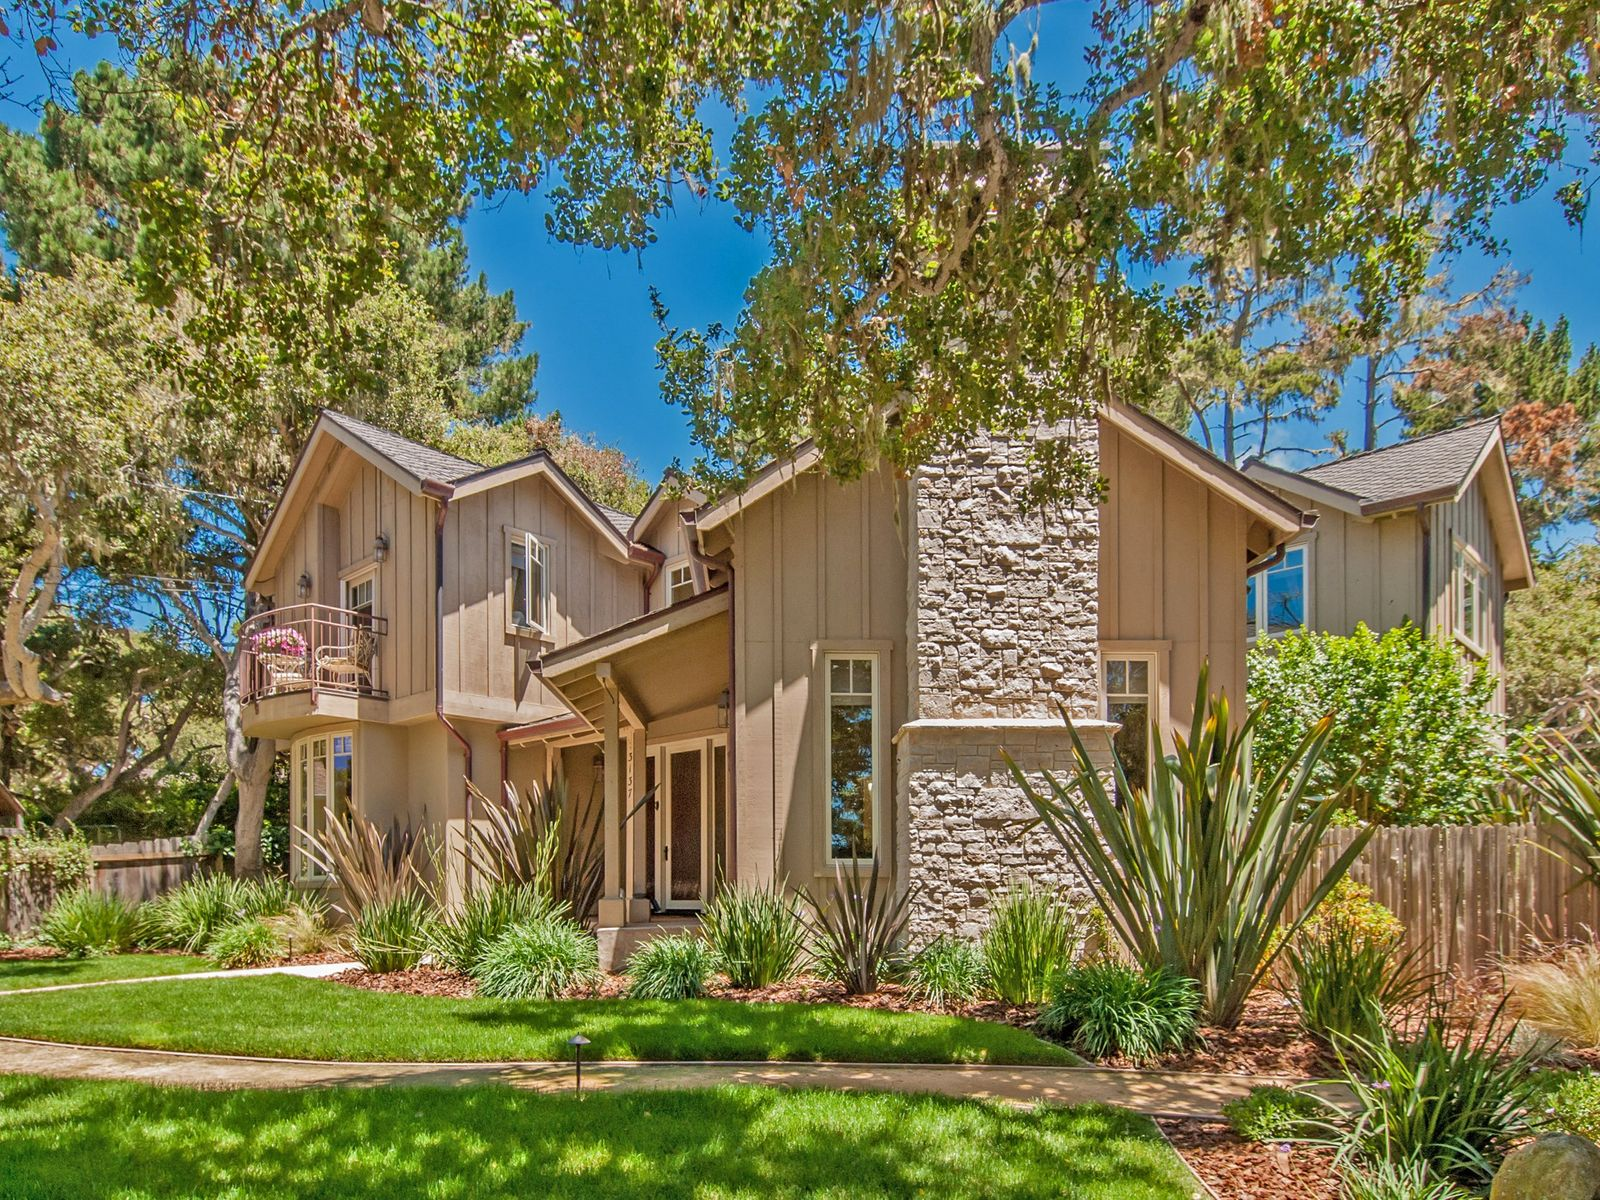 Pebble Beach Paradise, Pebble Beach CA Single Family Home - Monterey Real Estate